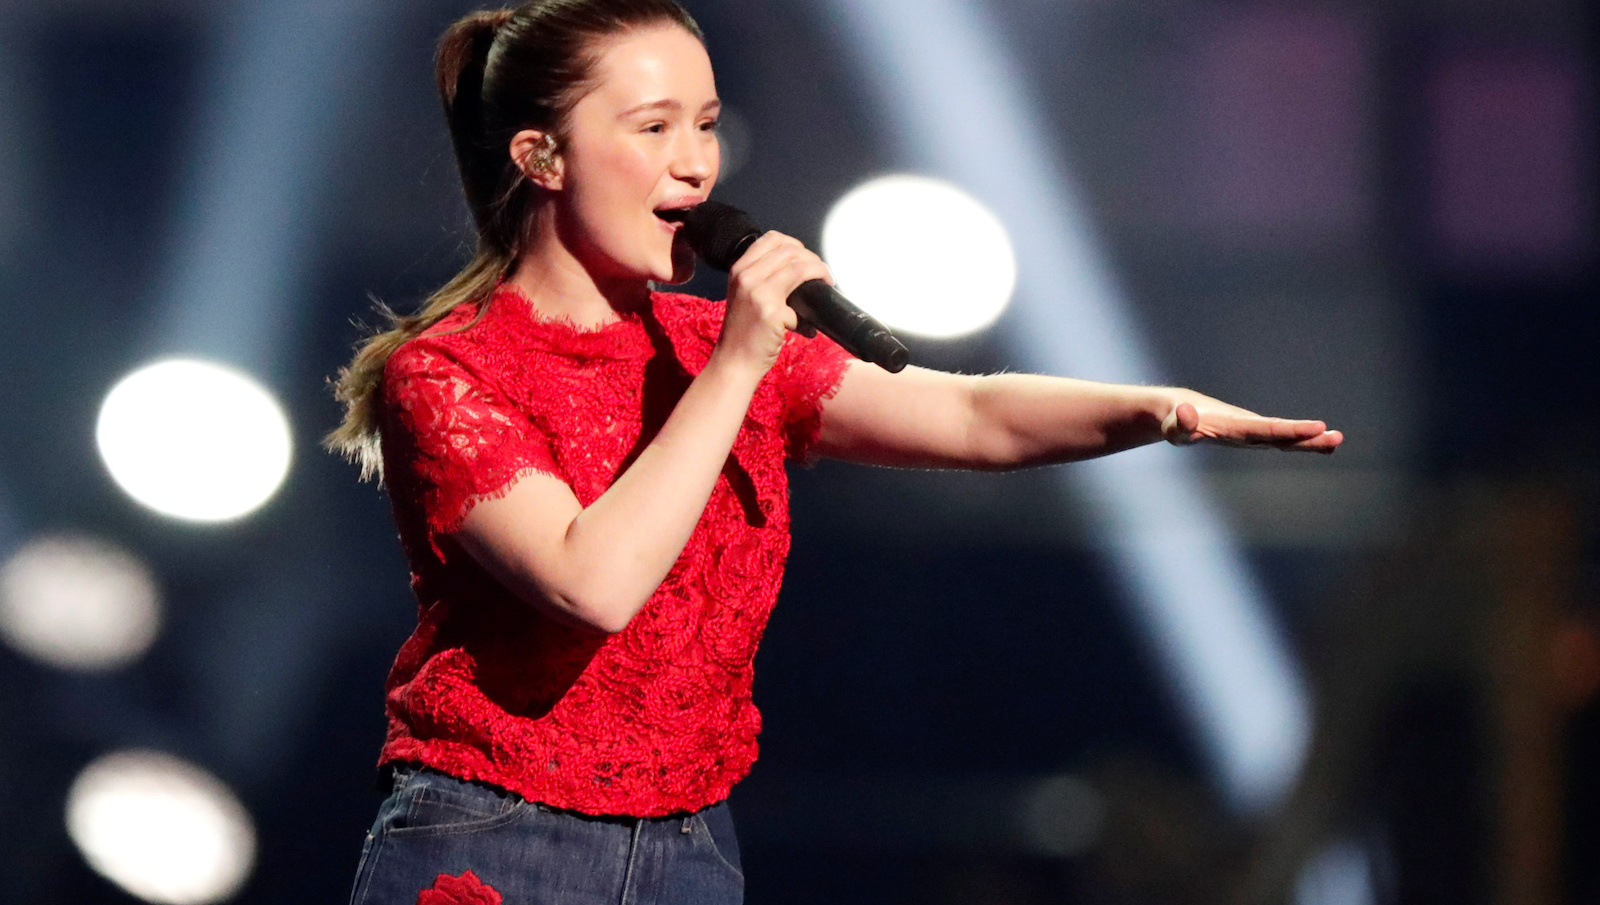 Sigrid performs at the traditional Nobel Peace Prize concert honouring the laureates, at Telenor Arena in Fornebu, Norway, December 11, 2017.  NTB Scanpix/Berit Roald via REUTERS   ATTENTION EDITORS - THIS IMAGE WAS PROVIDED BY A THIRD PARTY. NORWAY OUT. NO COMMERCIAL OR EDITORIAL SALES IN NORWAY.  *** Local Caption *** NORWAY OUT - RC1C4C724A00